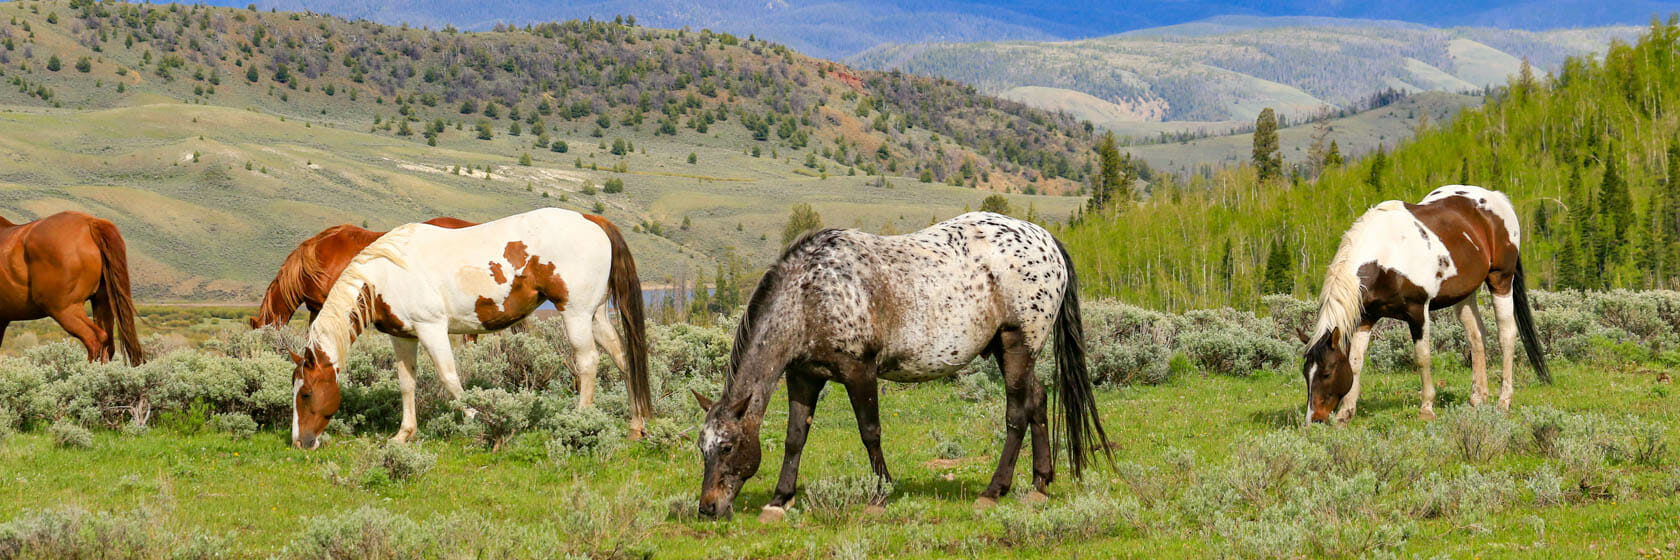 Horses grazing in a field near mountains